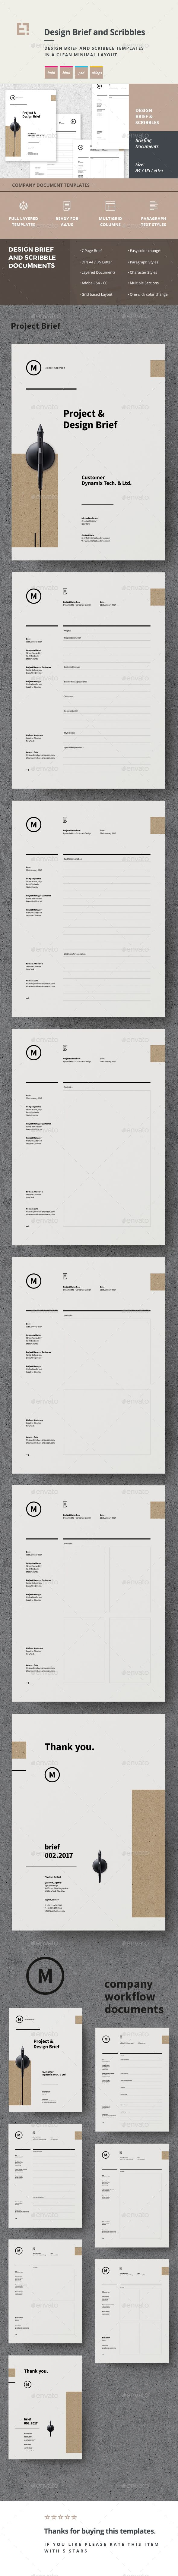 Brief — Photoshop PSD #8.5x11 #questions web • Download ➝ https://graphicriver.net/item/brief/19466818?ref=pxcr